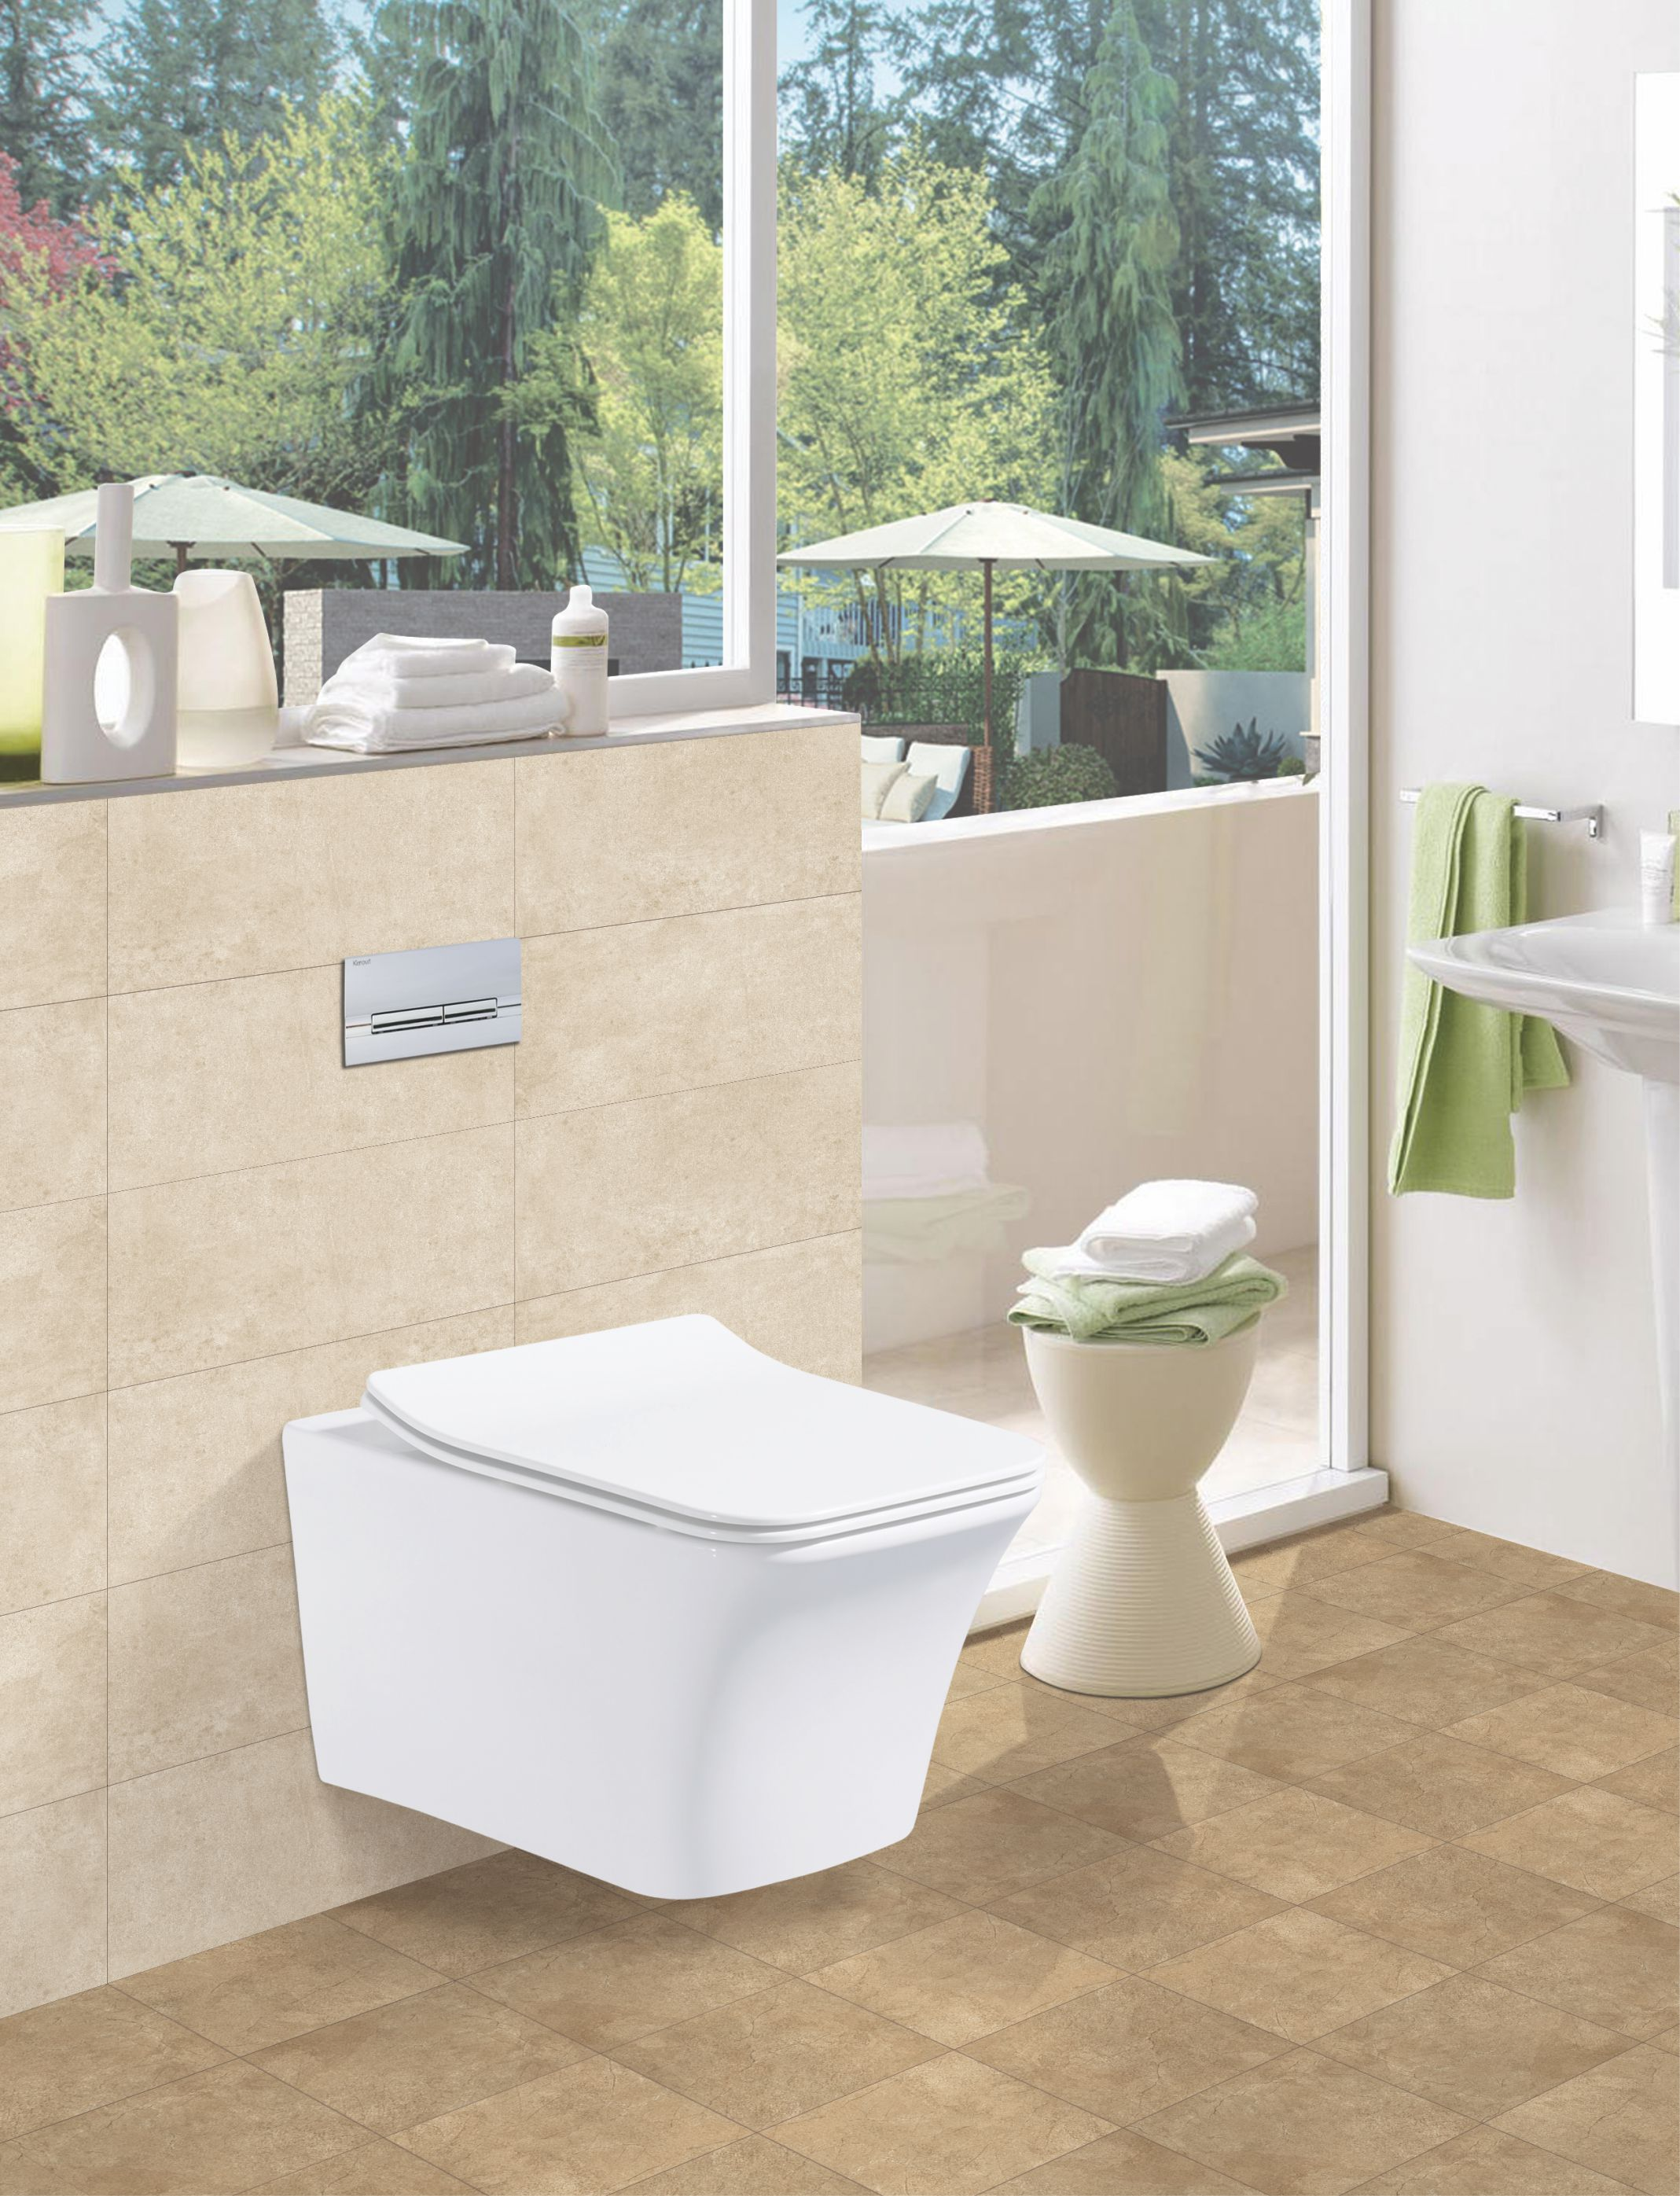 Kerovit- a brand by Kajaria redefines bath spaces - For Press ...